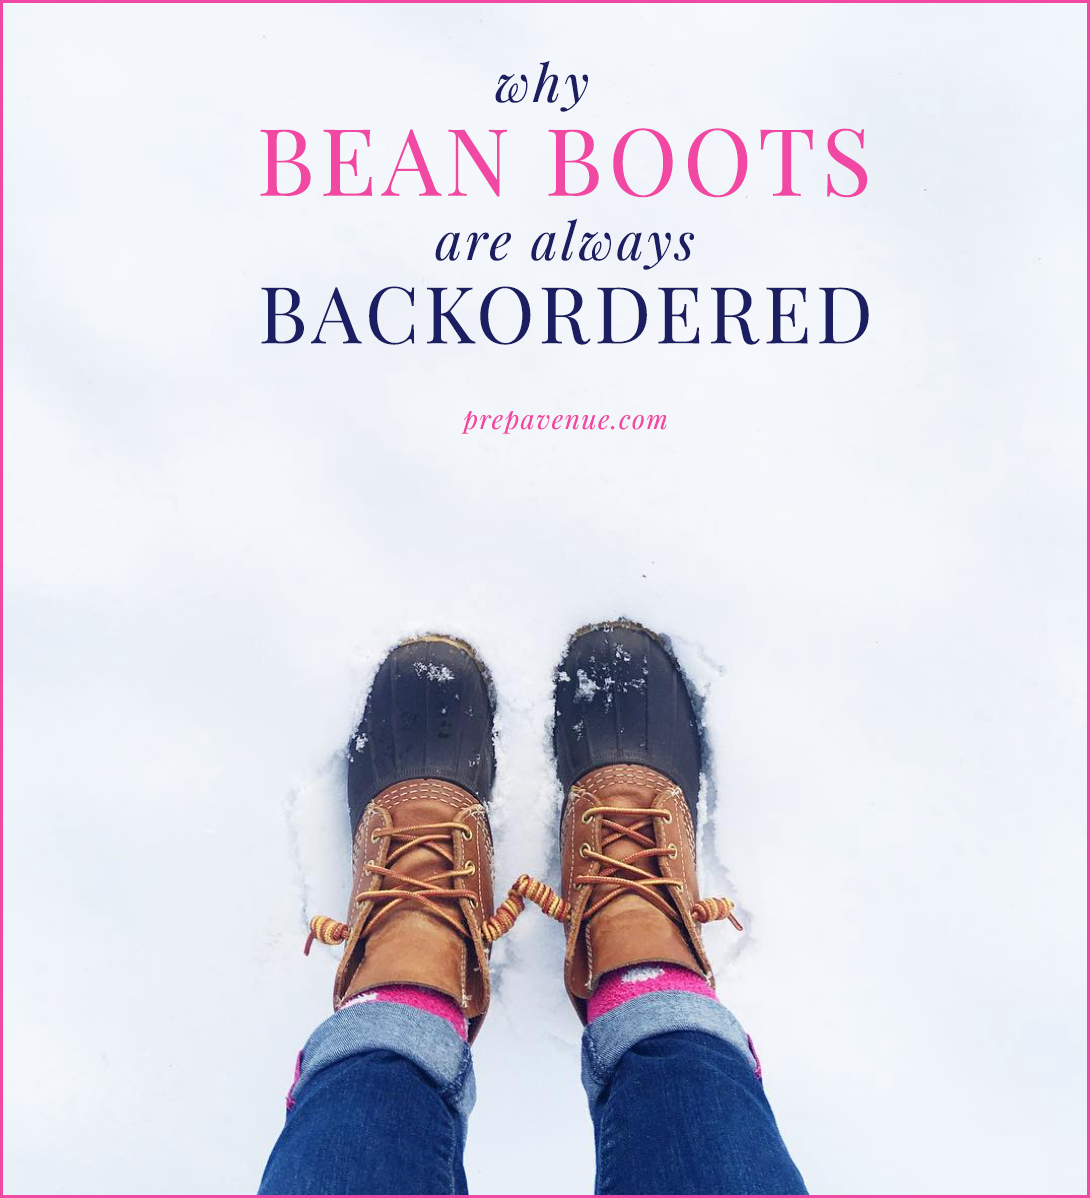 bean boots, backorder, fall, winter, backordered, why, long, how, boot, weather, shipping